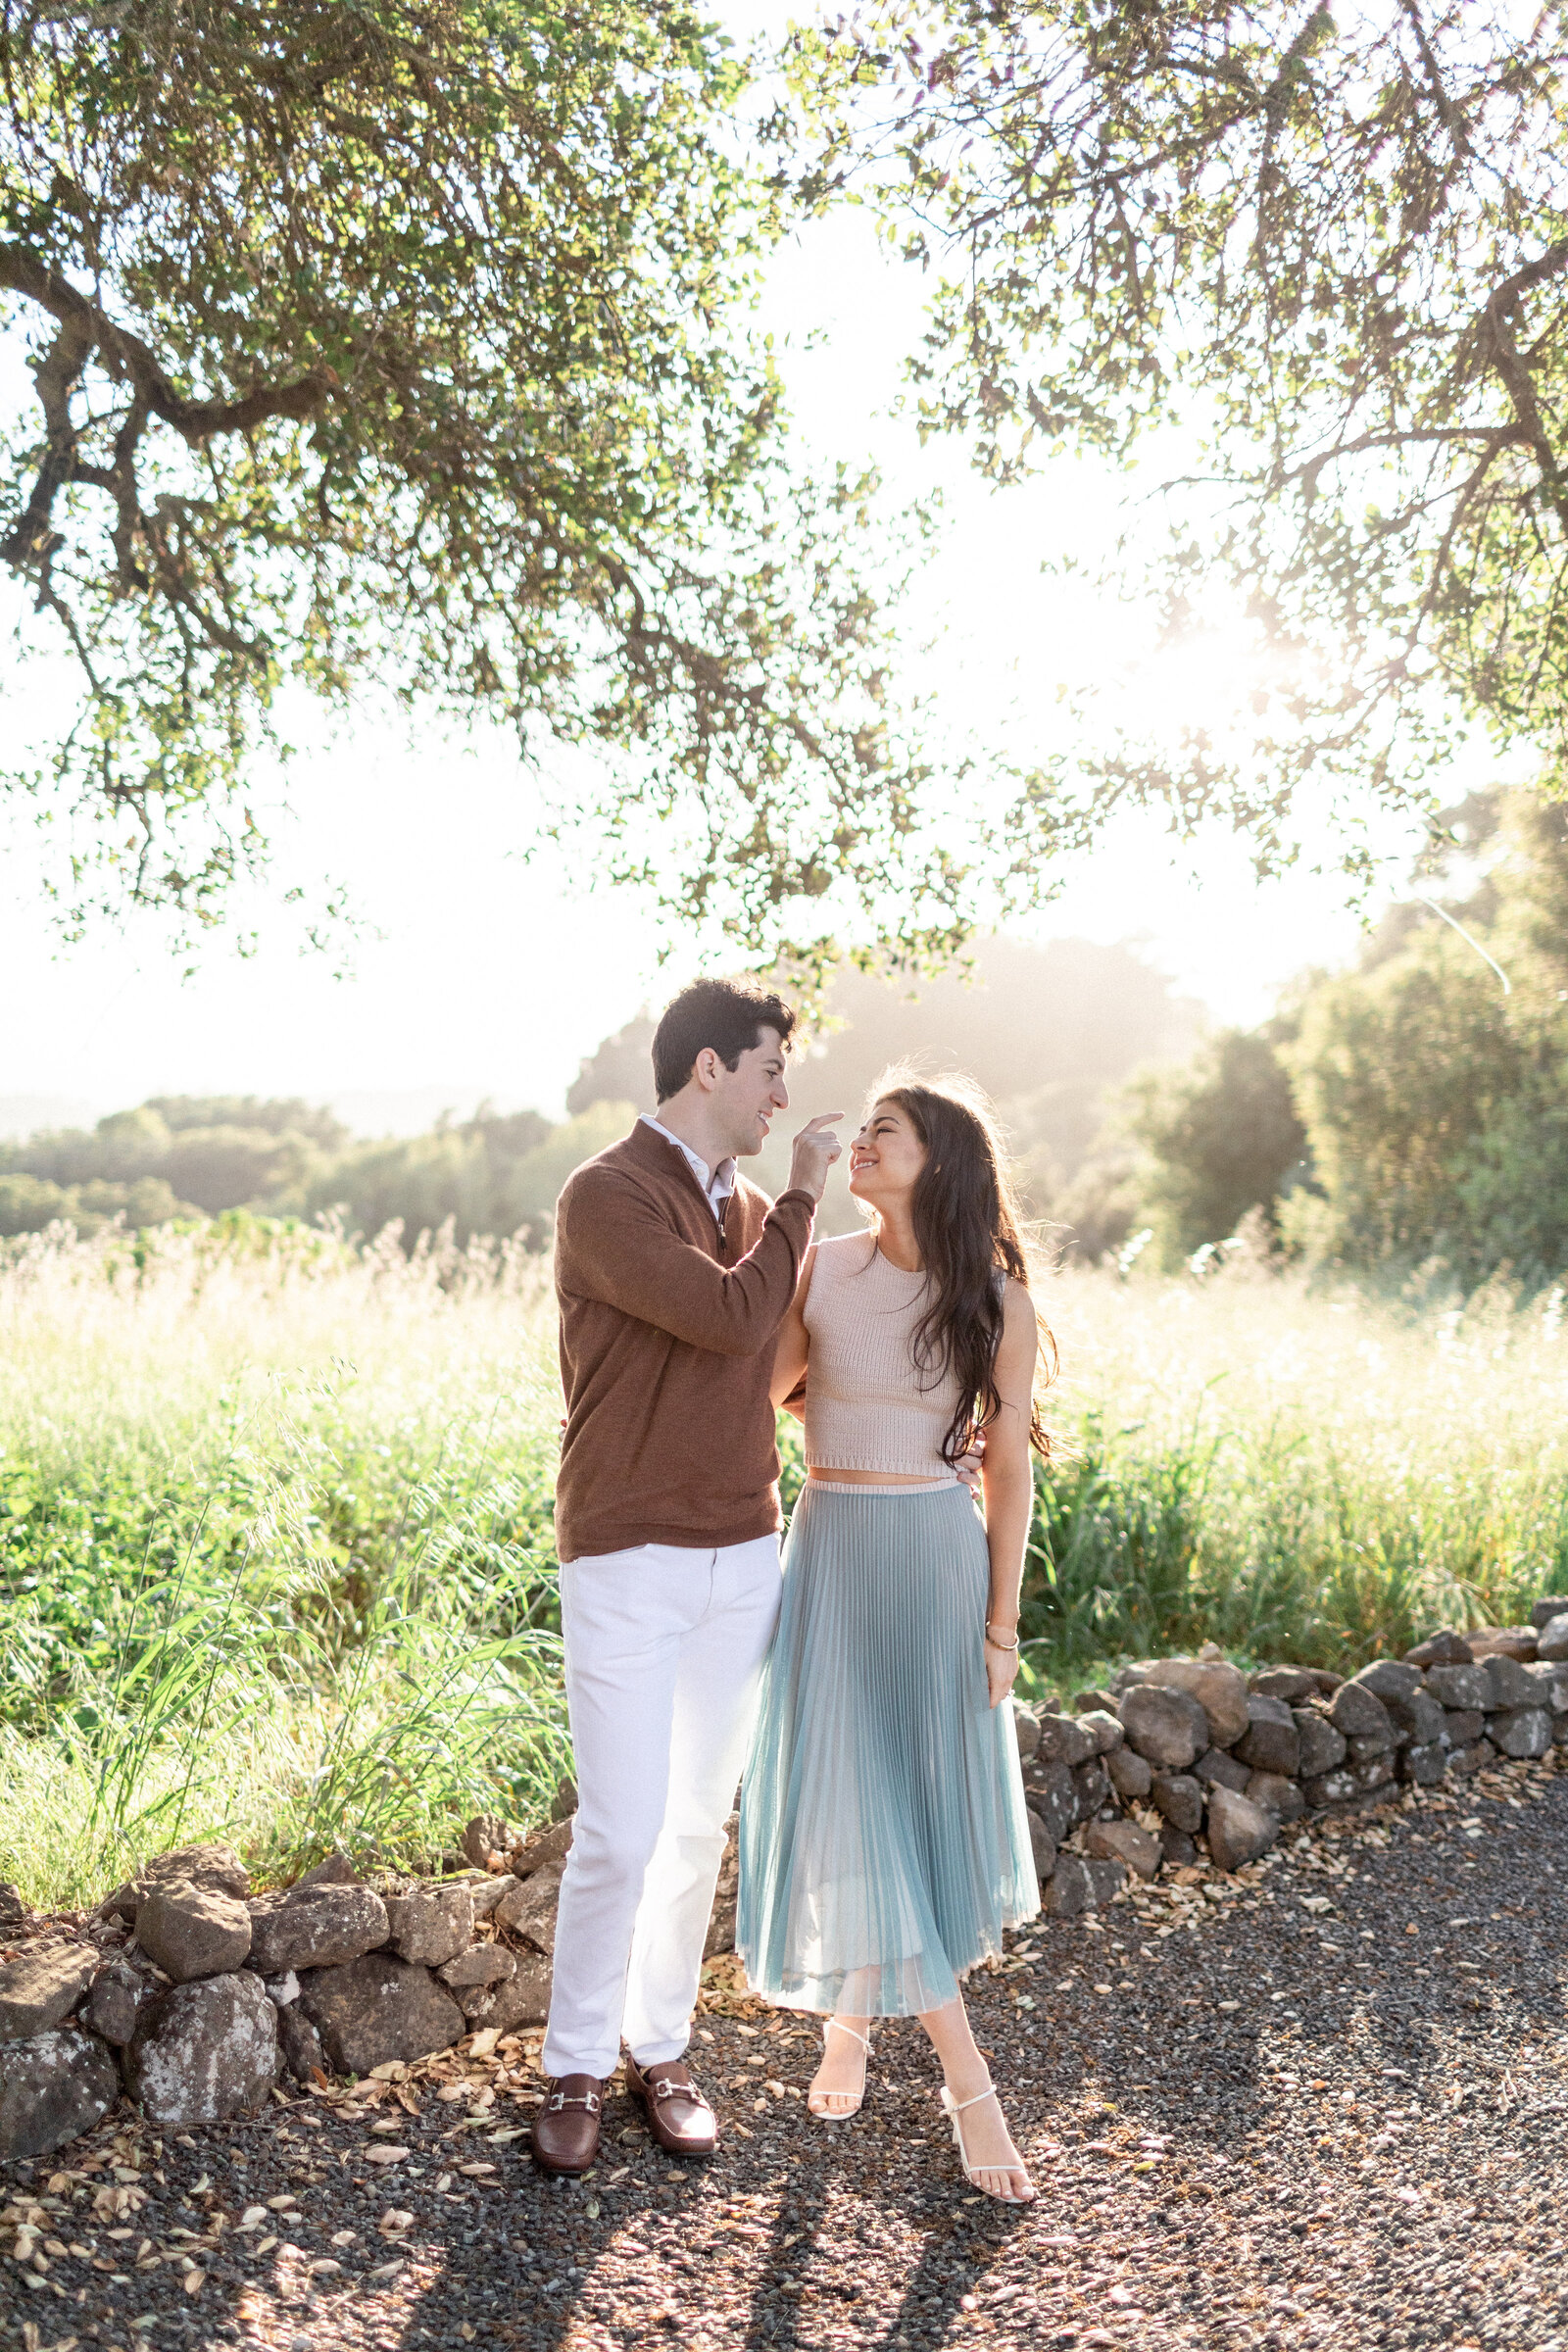 052-larissa-cleveland-engaged-wedding_photographer-san-francisco-carmel-napa-california-lcphoto-AJ-engaged-134